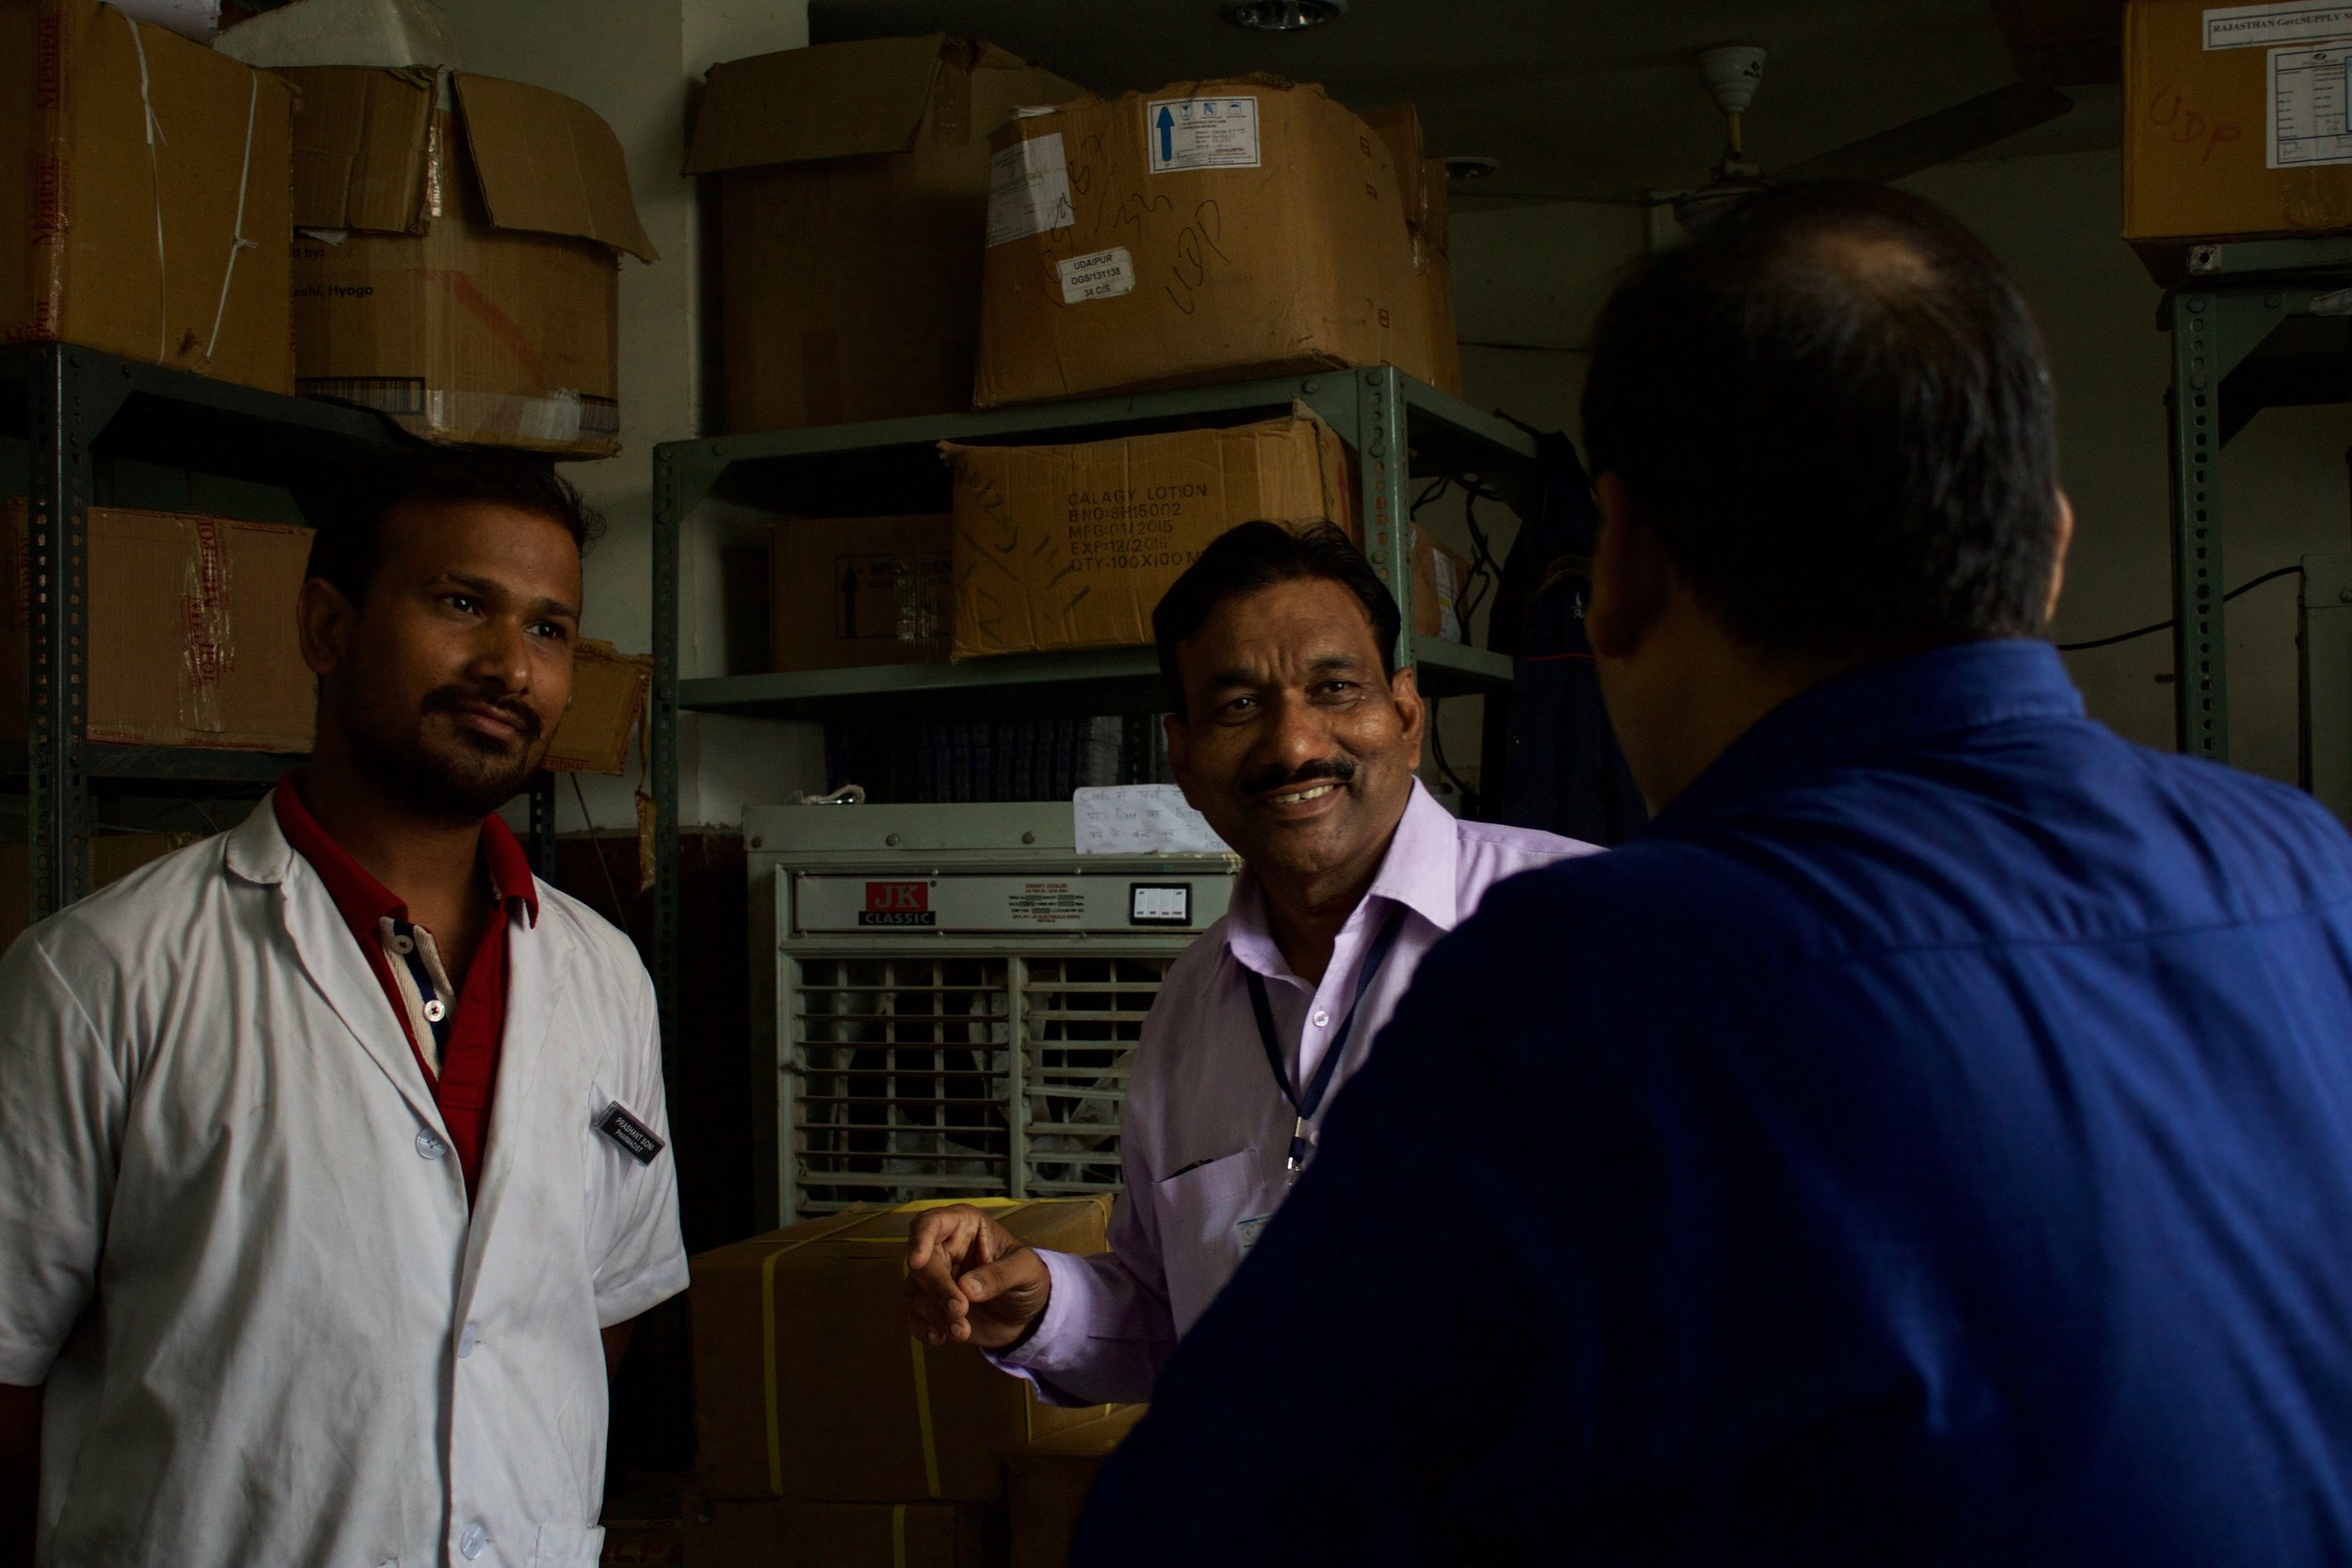 During a visit to Maharana Bhupal Hospital, Dr. Dr. Rajesh Bharadiya stops to check in with Dr. Sanjeev and the pharmacist on duty.